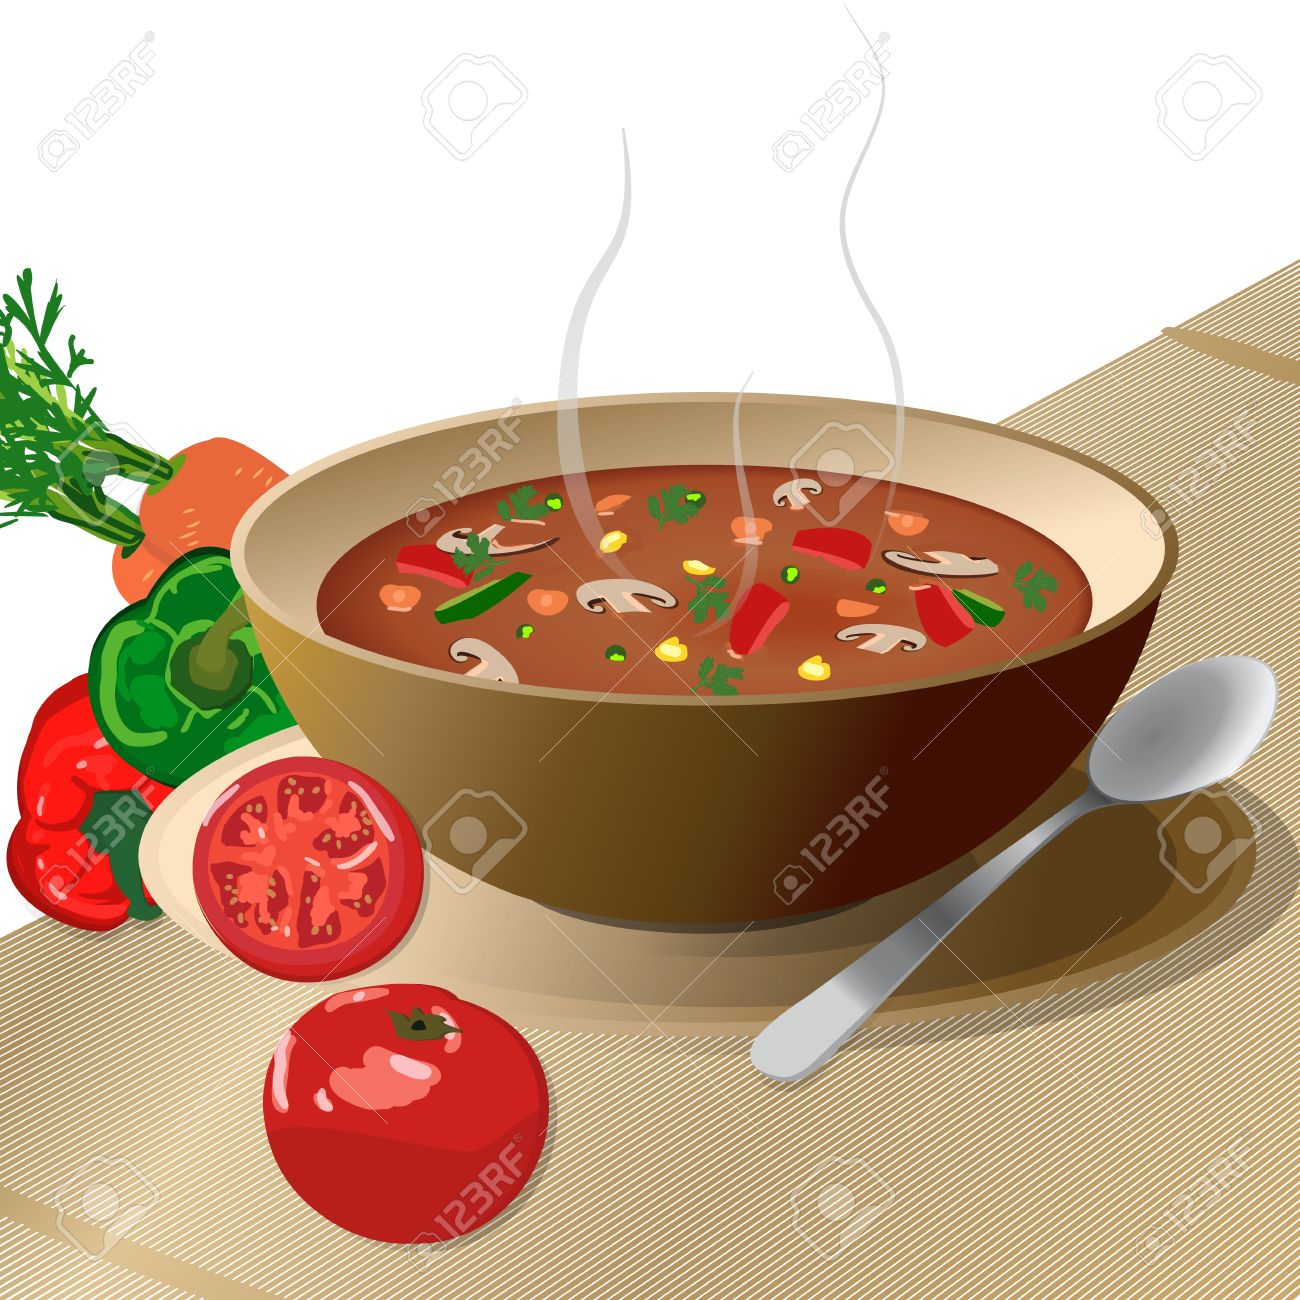 Bowl of hot vegetable soup on plate, with spoon and tomato, peppers, carrots, isolated on white Stock Vector - 12867980